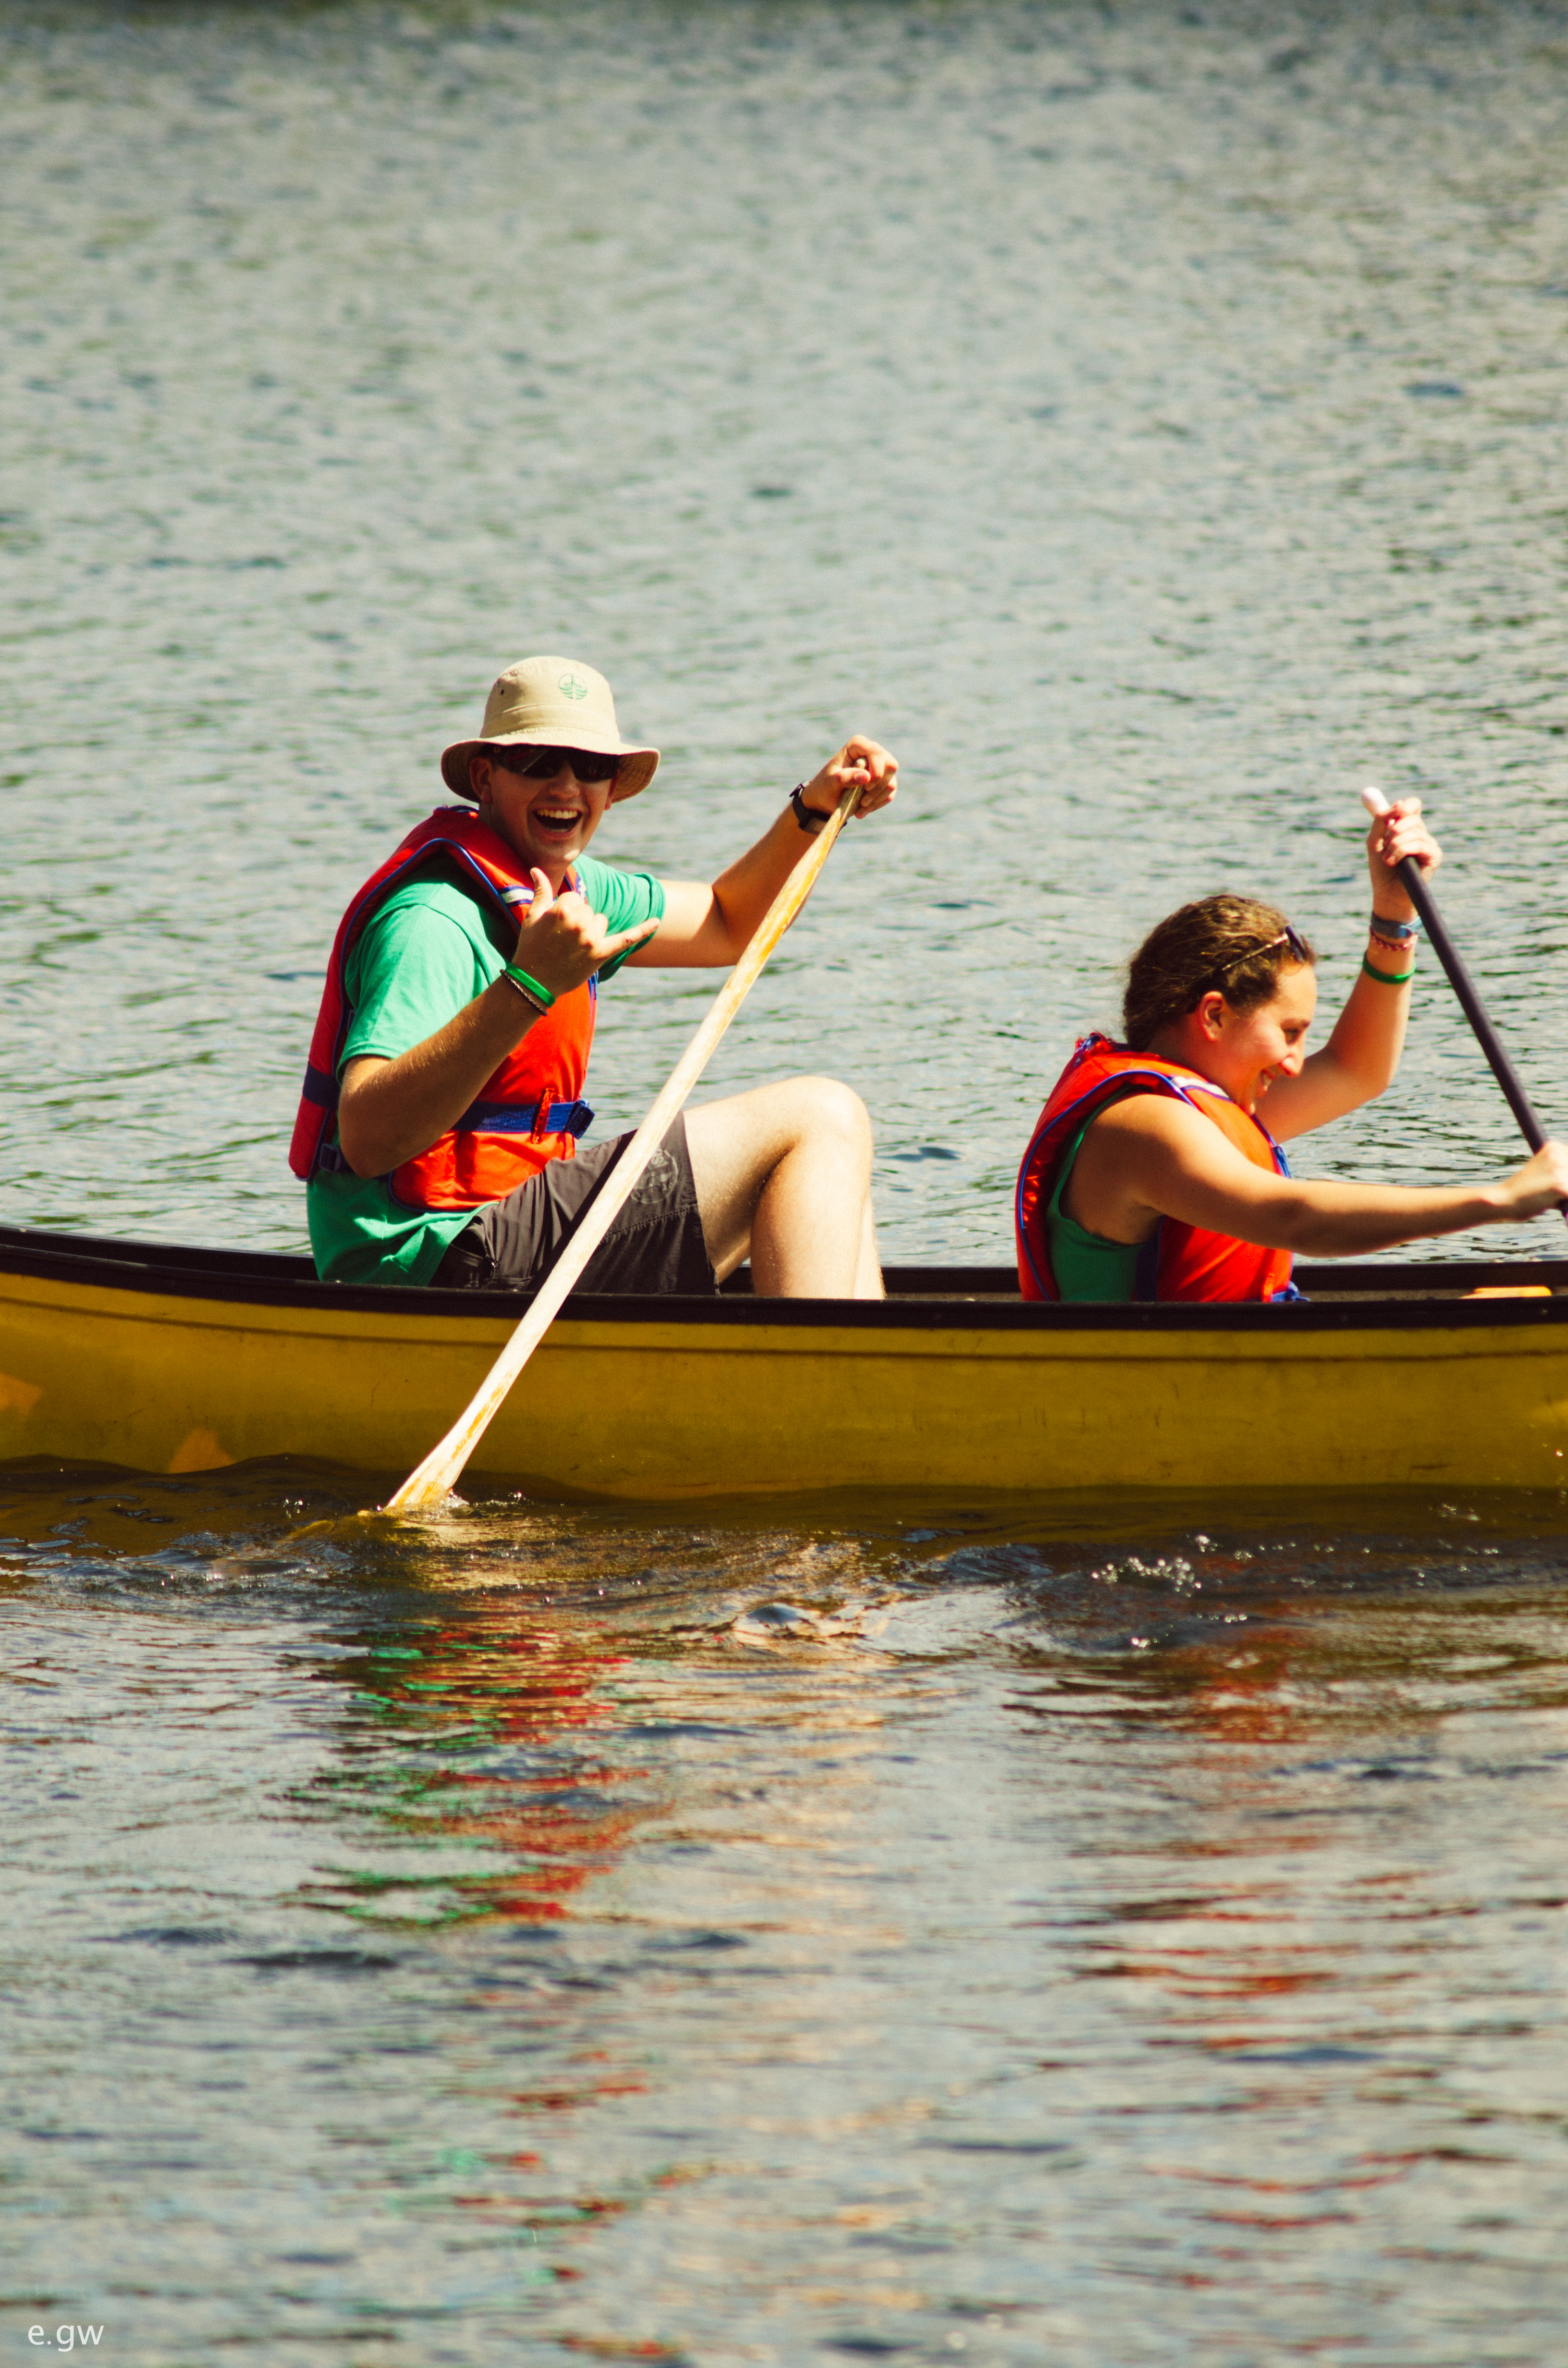 Image of student and student leader in a canoe, paddling and smiling